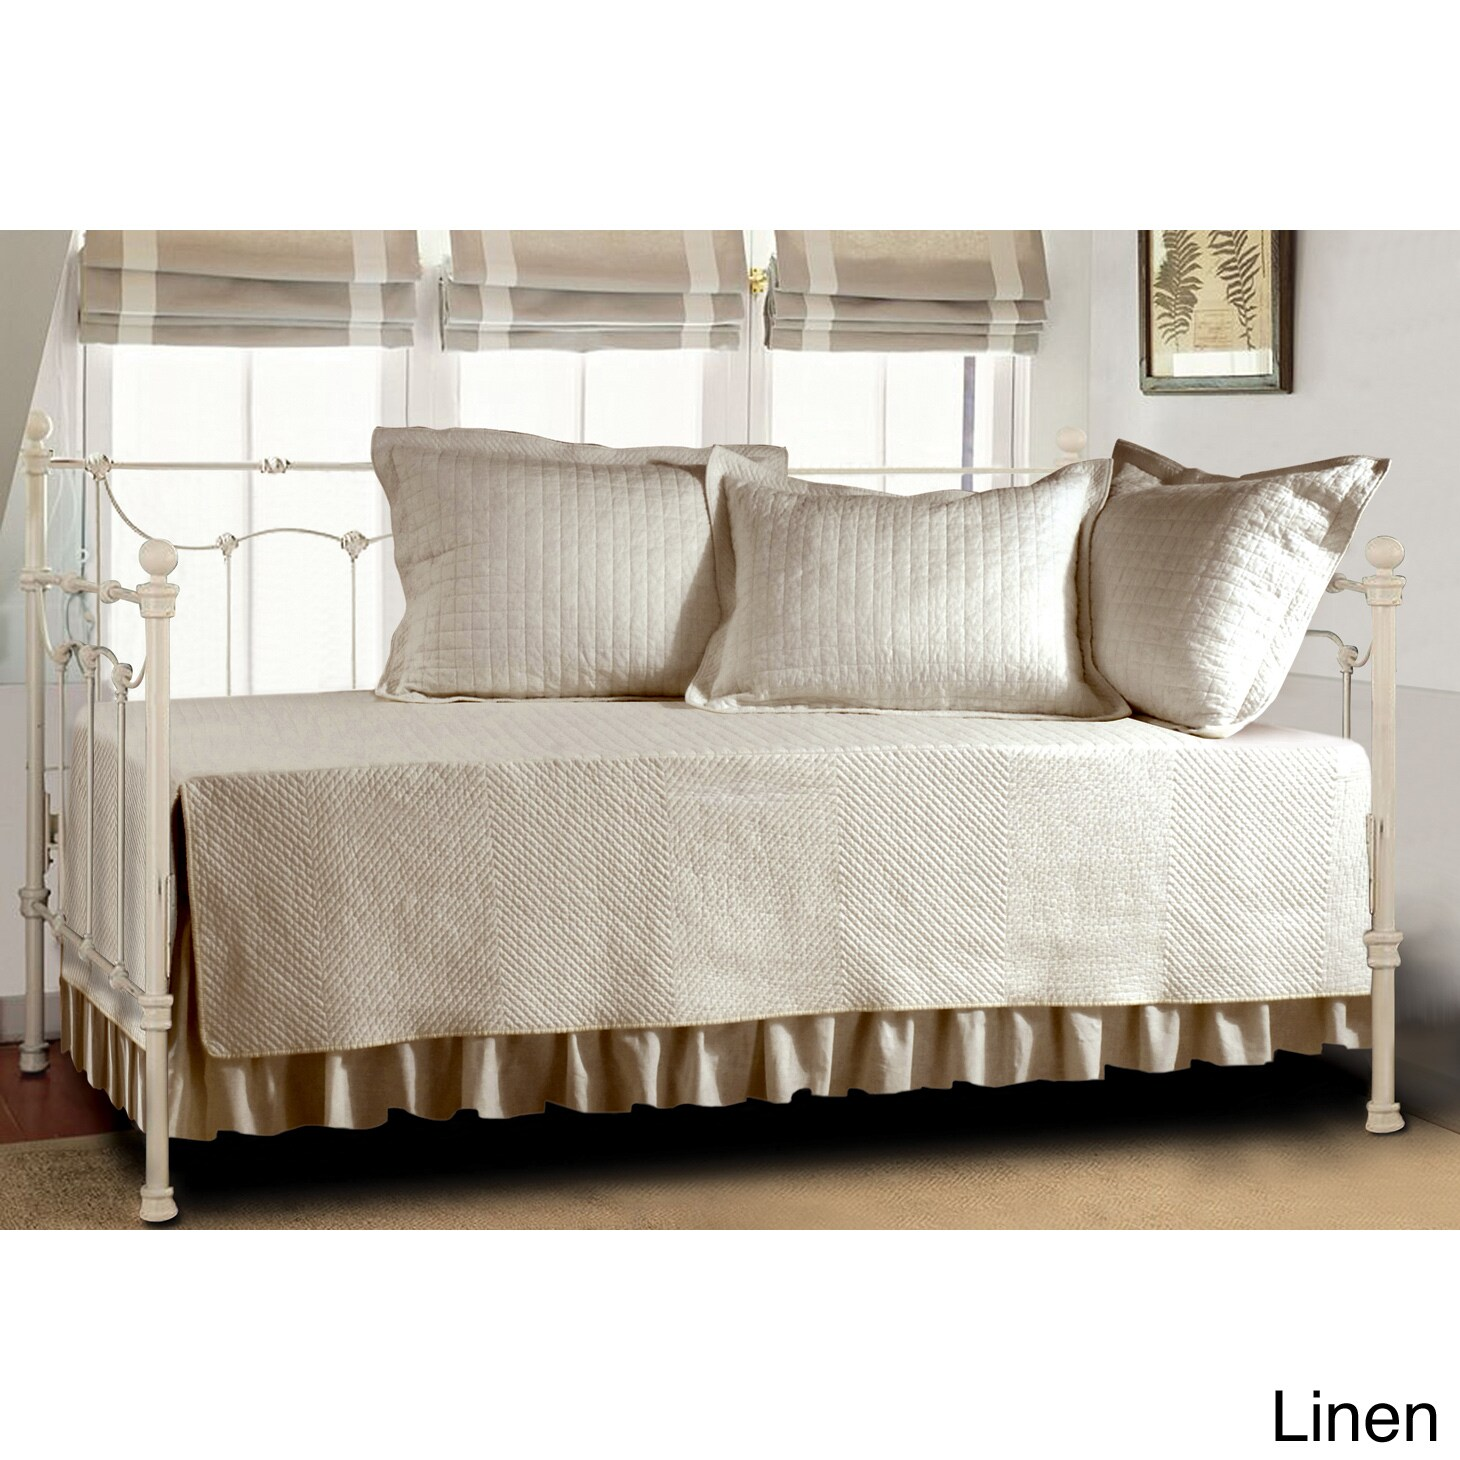 White daybed with trundle bed - Piece Daybed Cover Set Covers Day Bed New Pillow Comforter Bedding